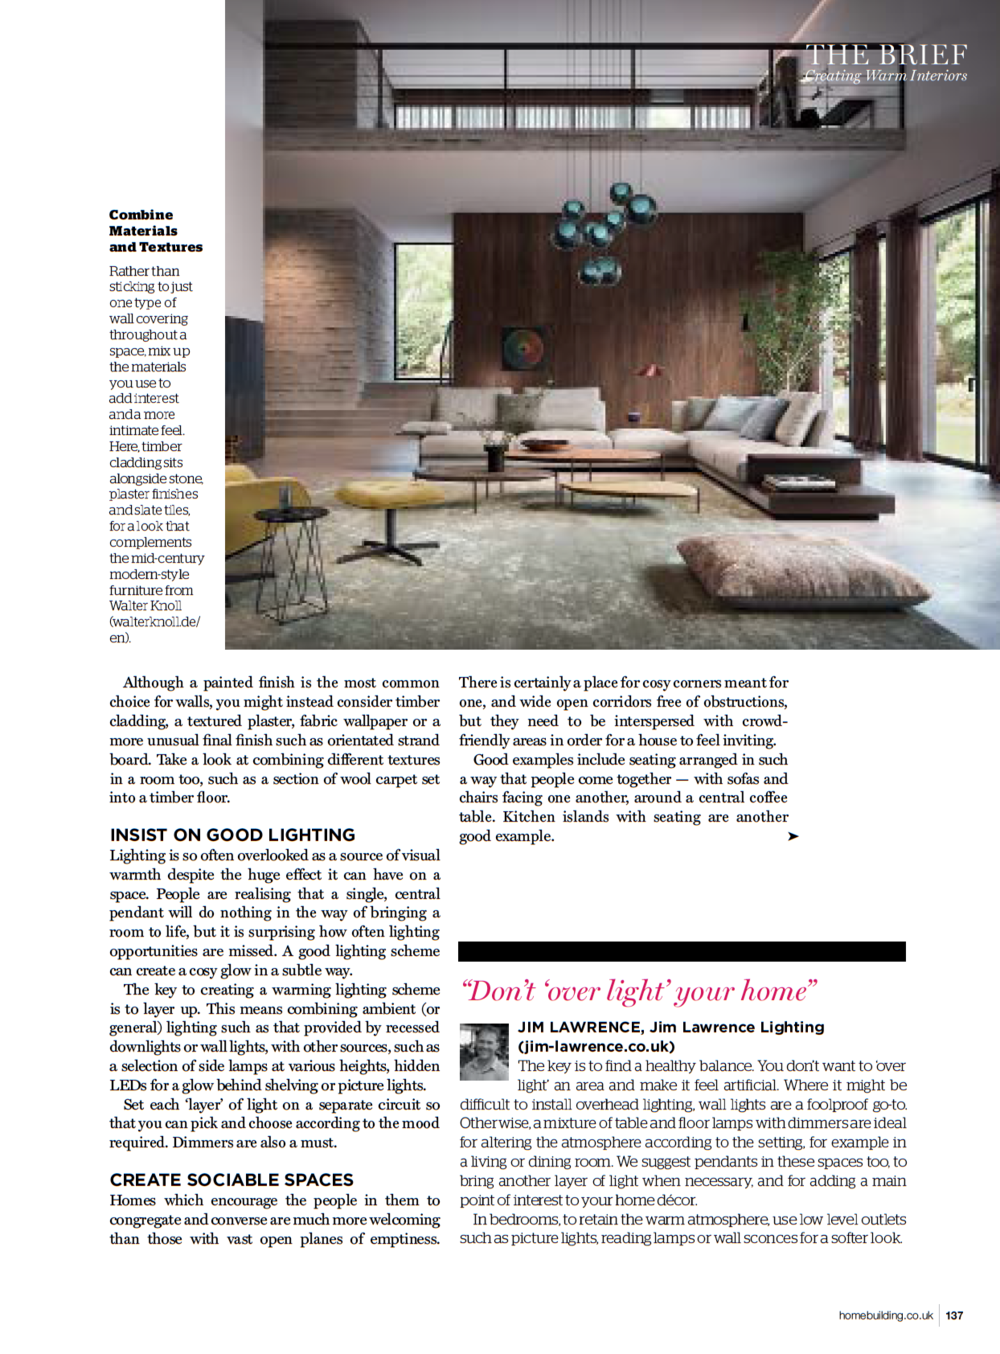 Homebuilding & Renovating featuring high end interior designer Jo Hamilton November 2018 3